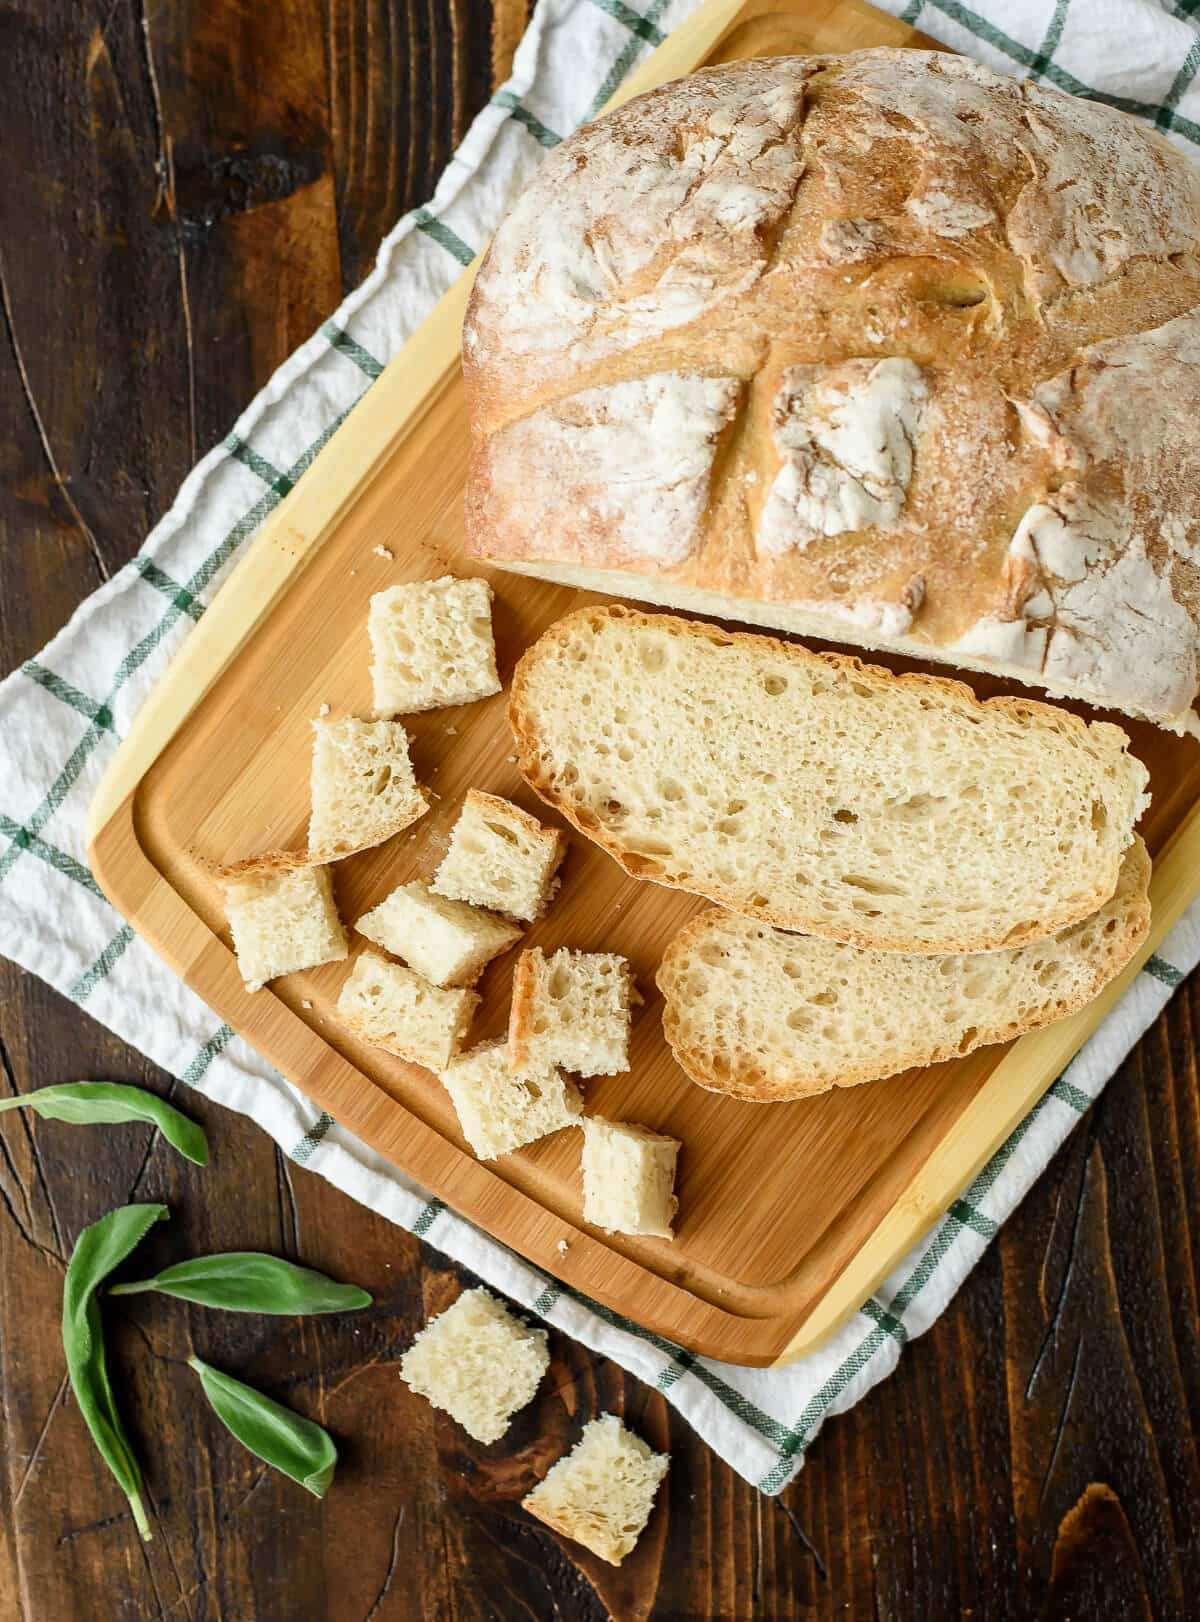 Crusty loaf of artisan bread for making Parmesan croutons